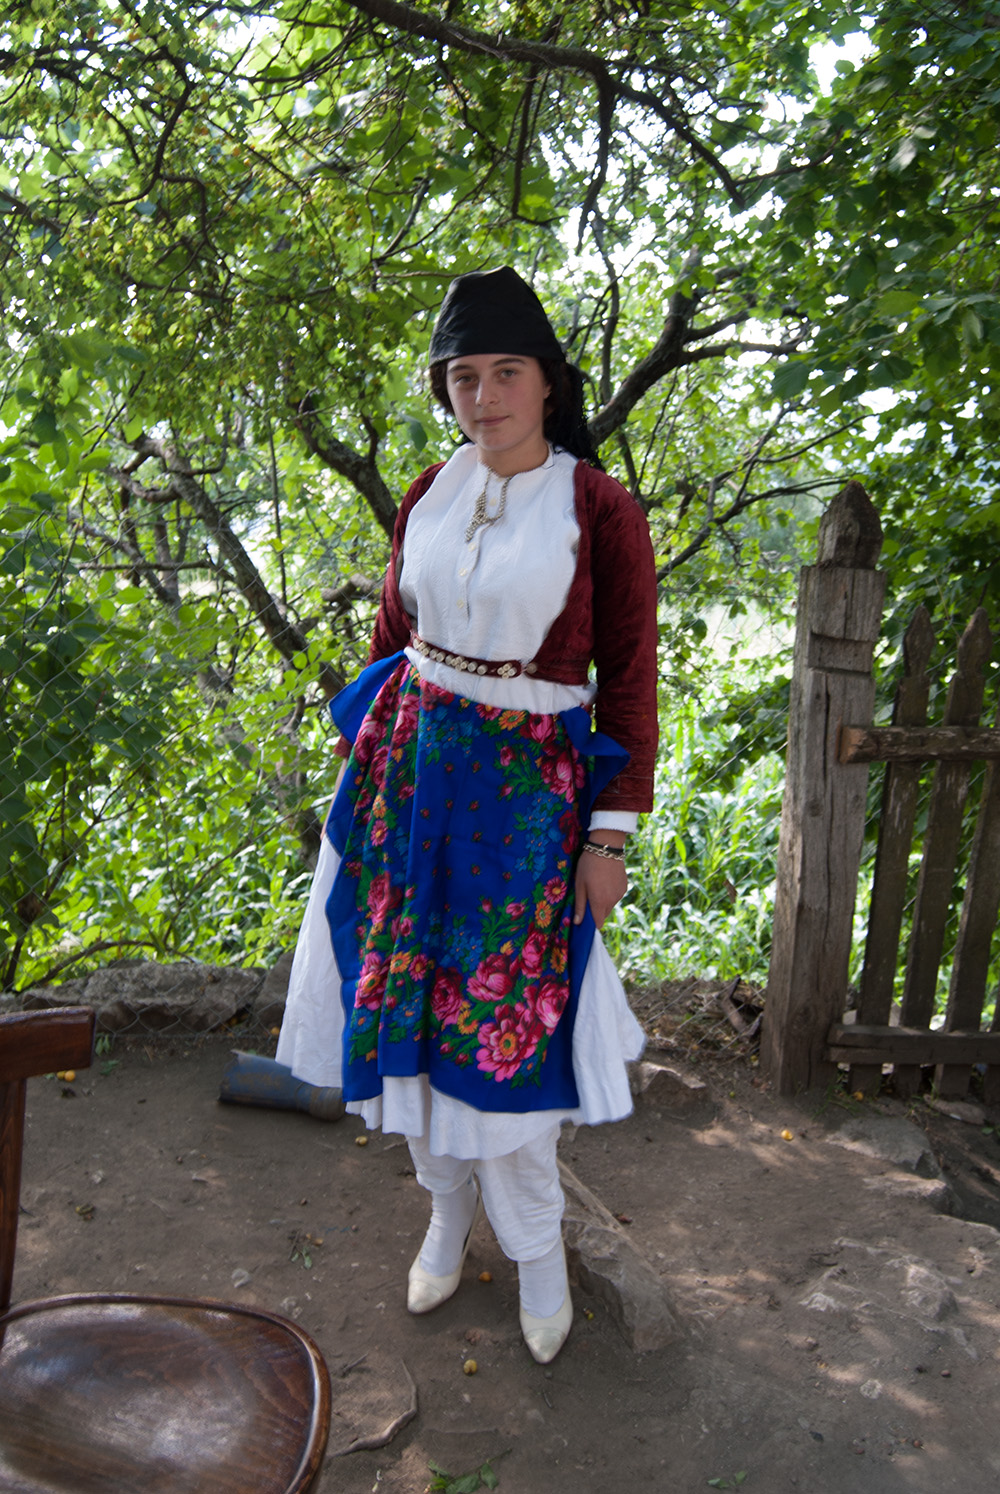 Portrait of a Girl in traditional costume, Orosh Mirditë, © alketa misja photography 2008